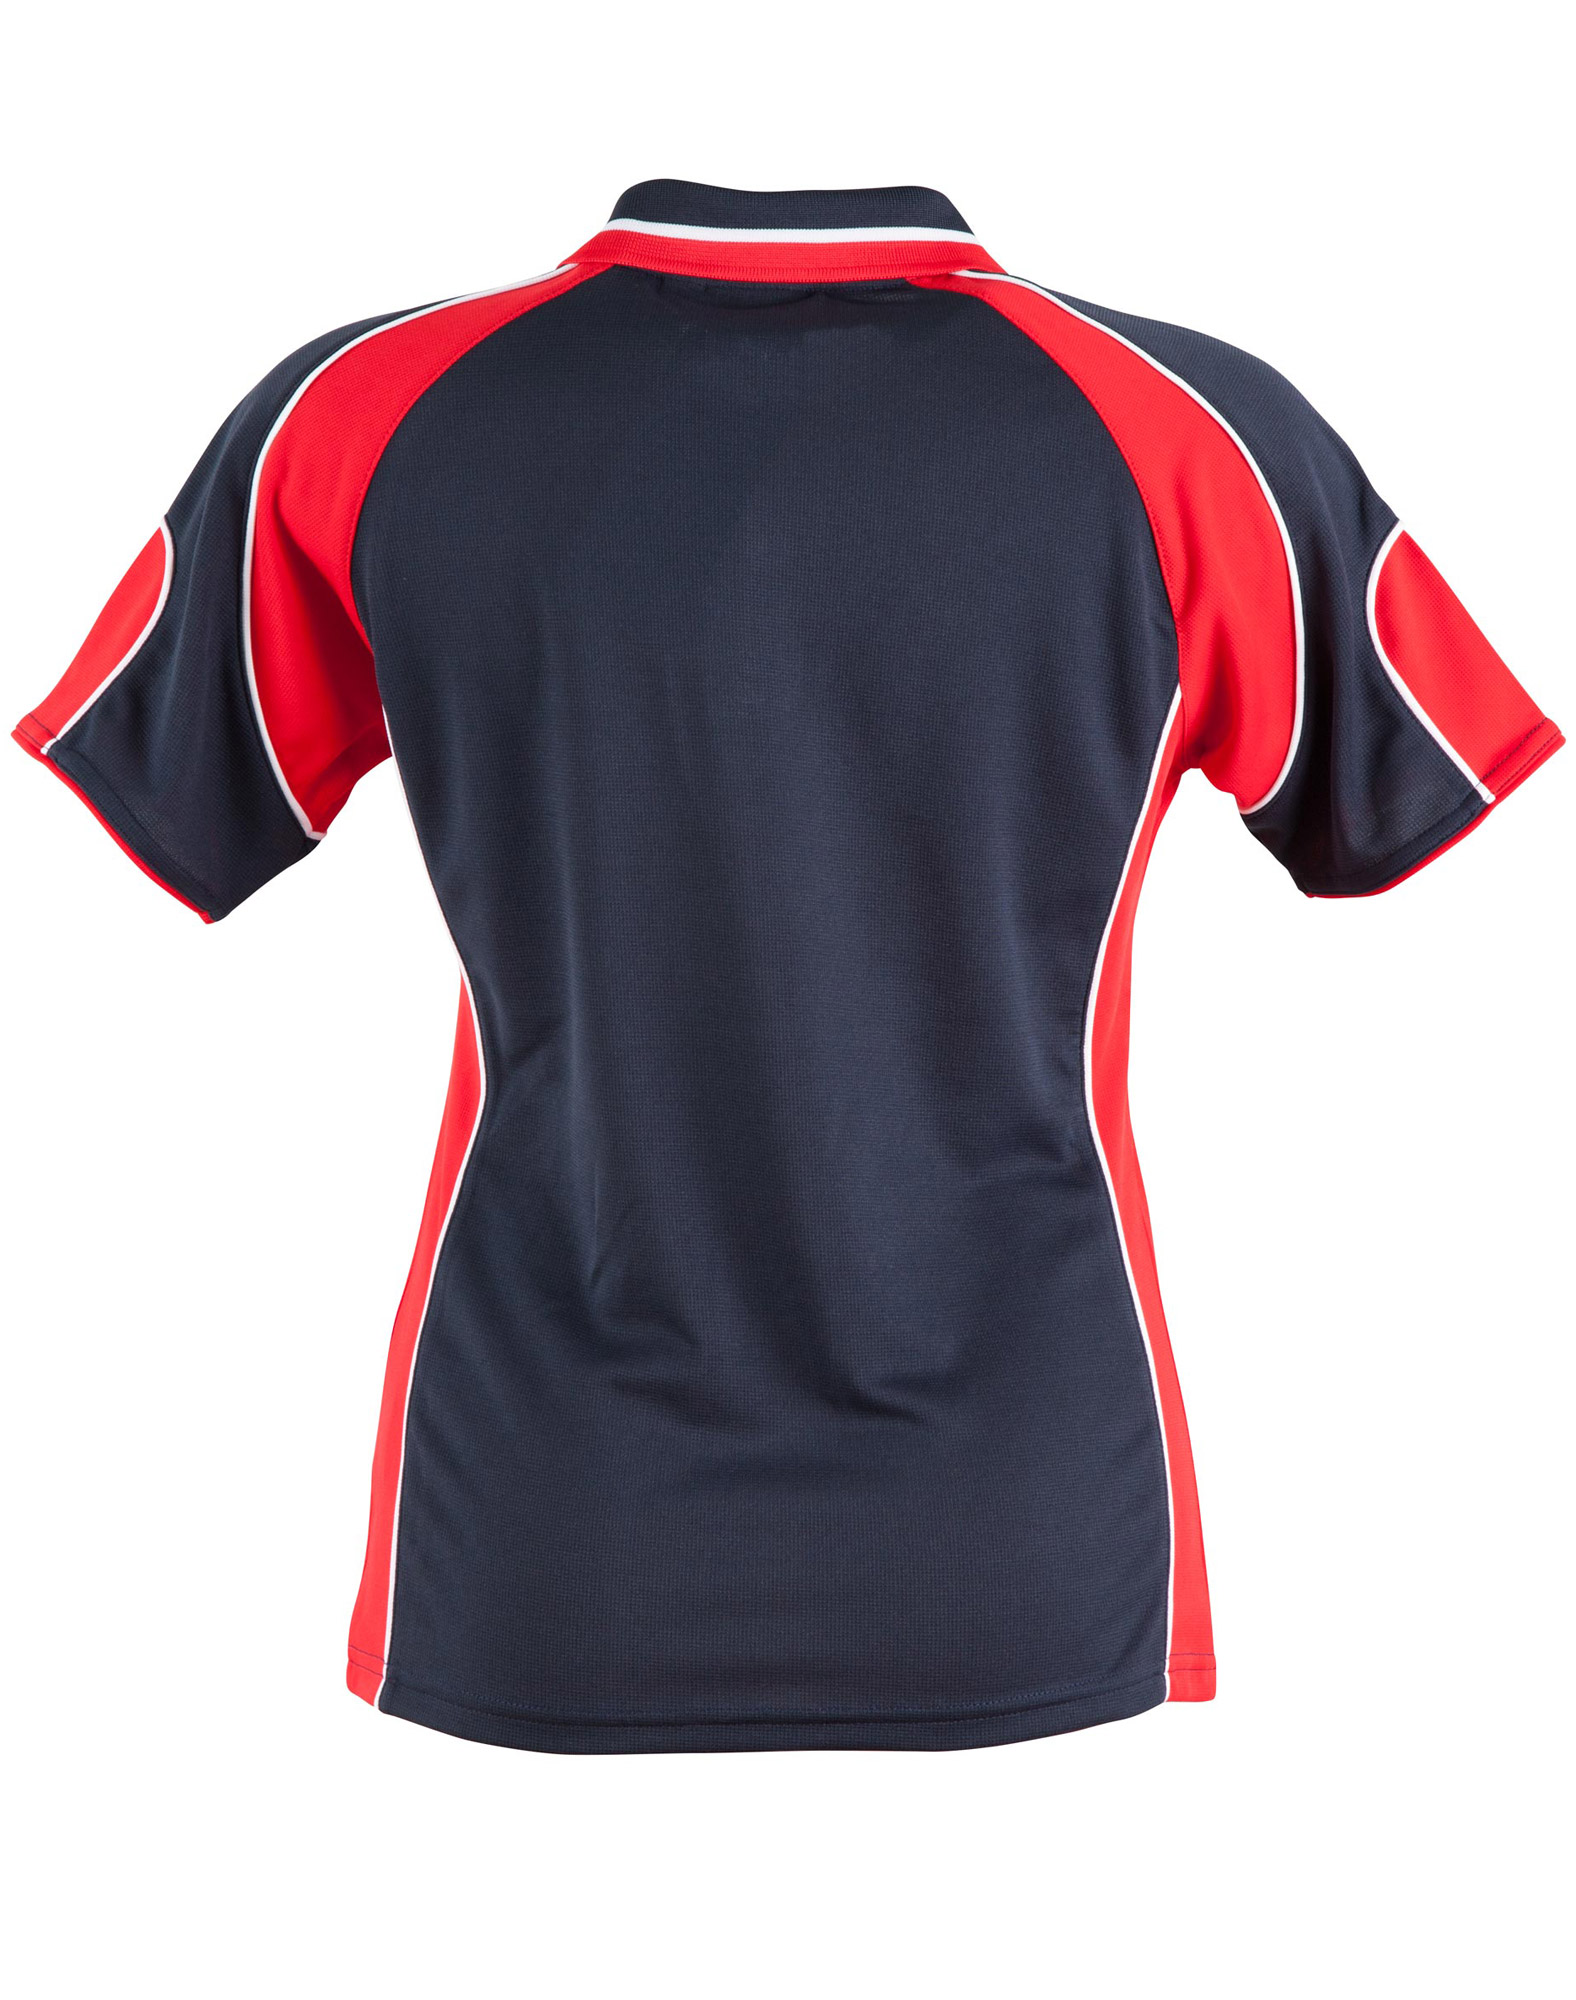 https://s3-ap-southeast-1.amazonaws.com/ws-imgs/POLOSHIRTS/PS62_NavyRed_Back_l.jpg